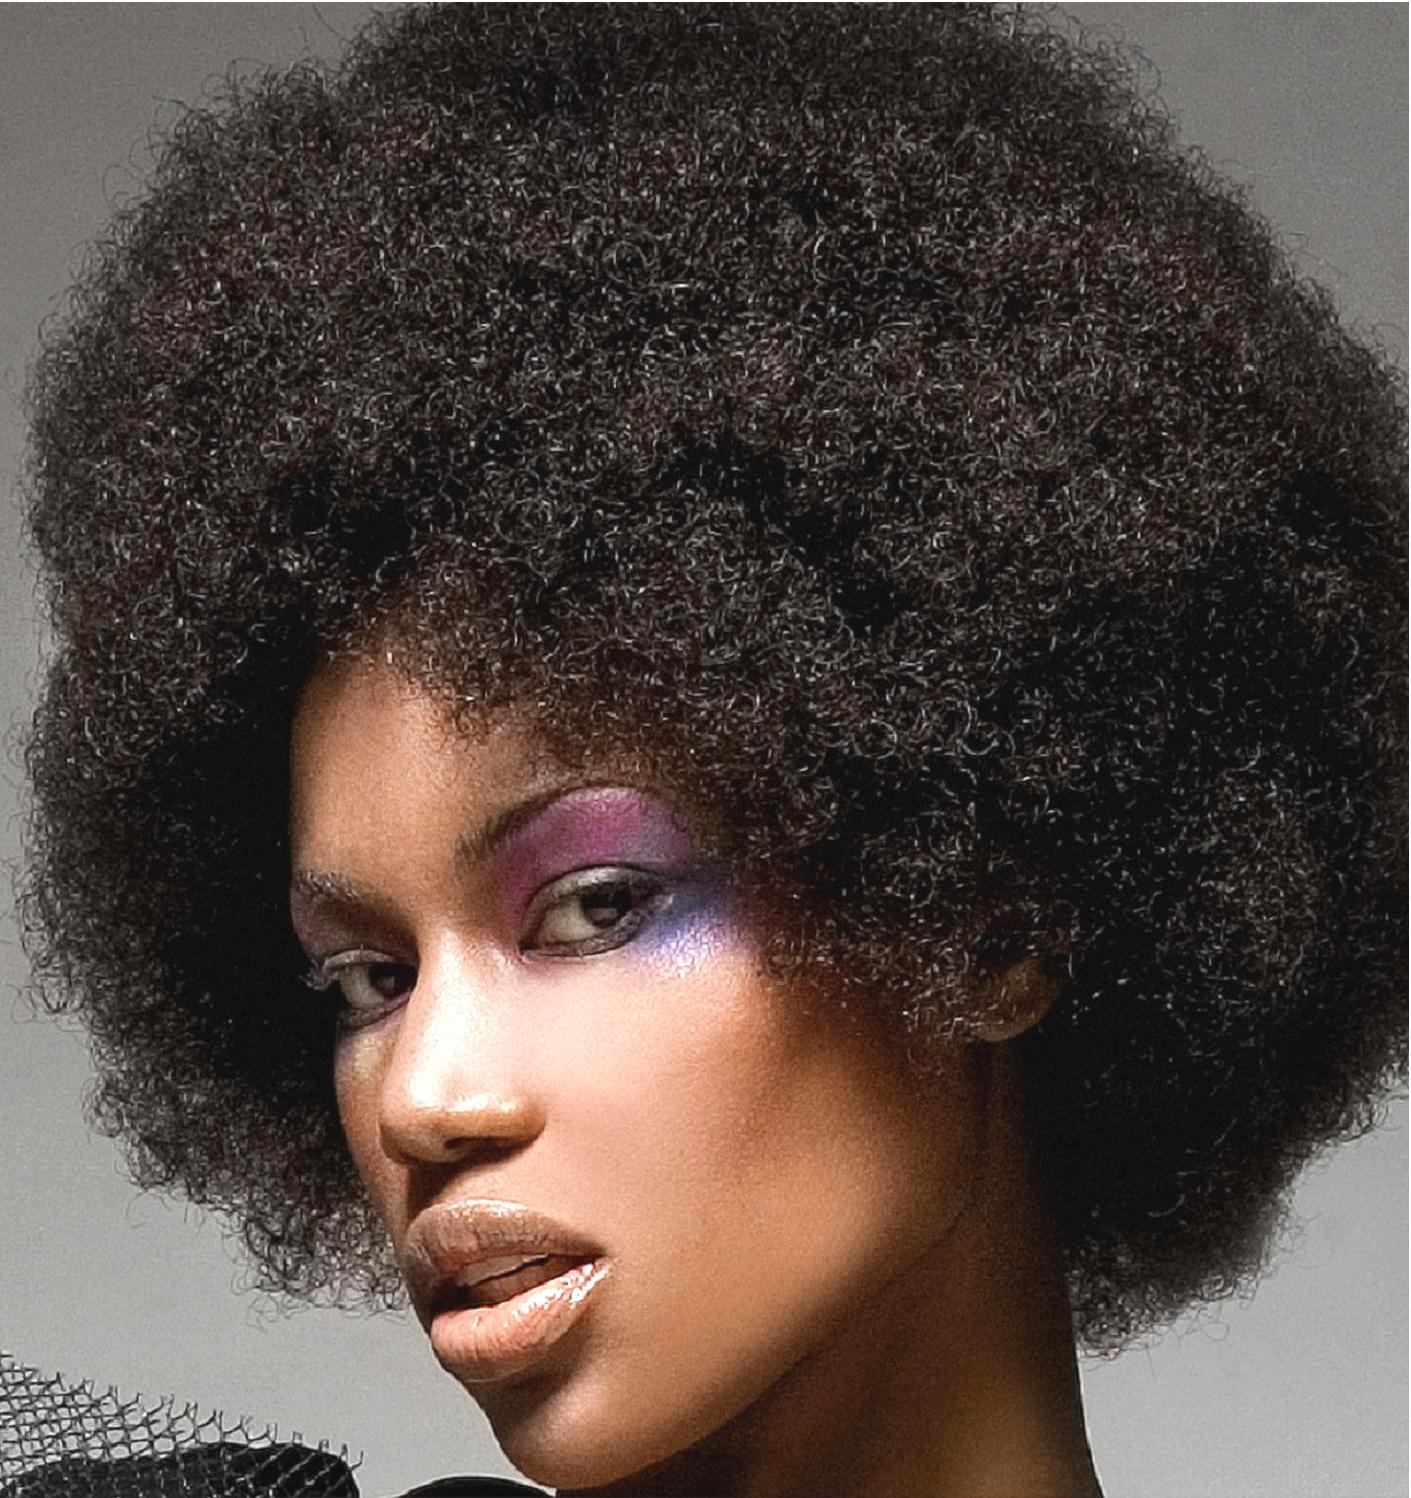 Is Natural Black Hair Care Redundant? Why Are Black Women So Negative?